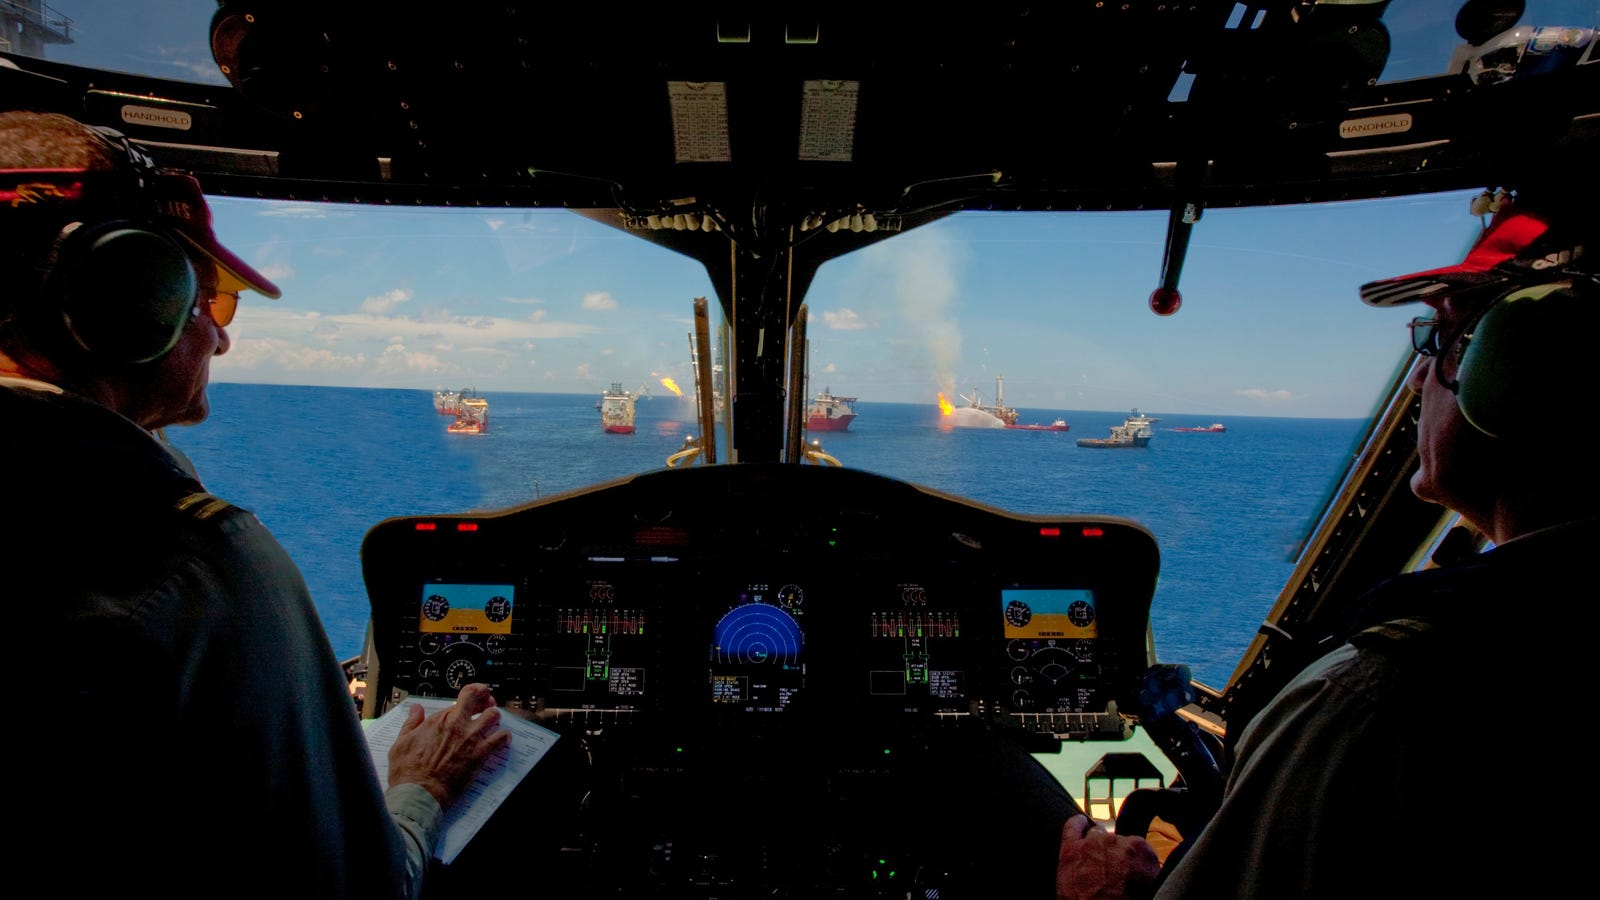 BP Photoshops Another Official Image Terribly - Airline captain takes amazing photos from his cockpit and no theyre not photoshopped